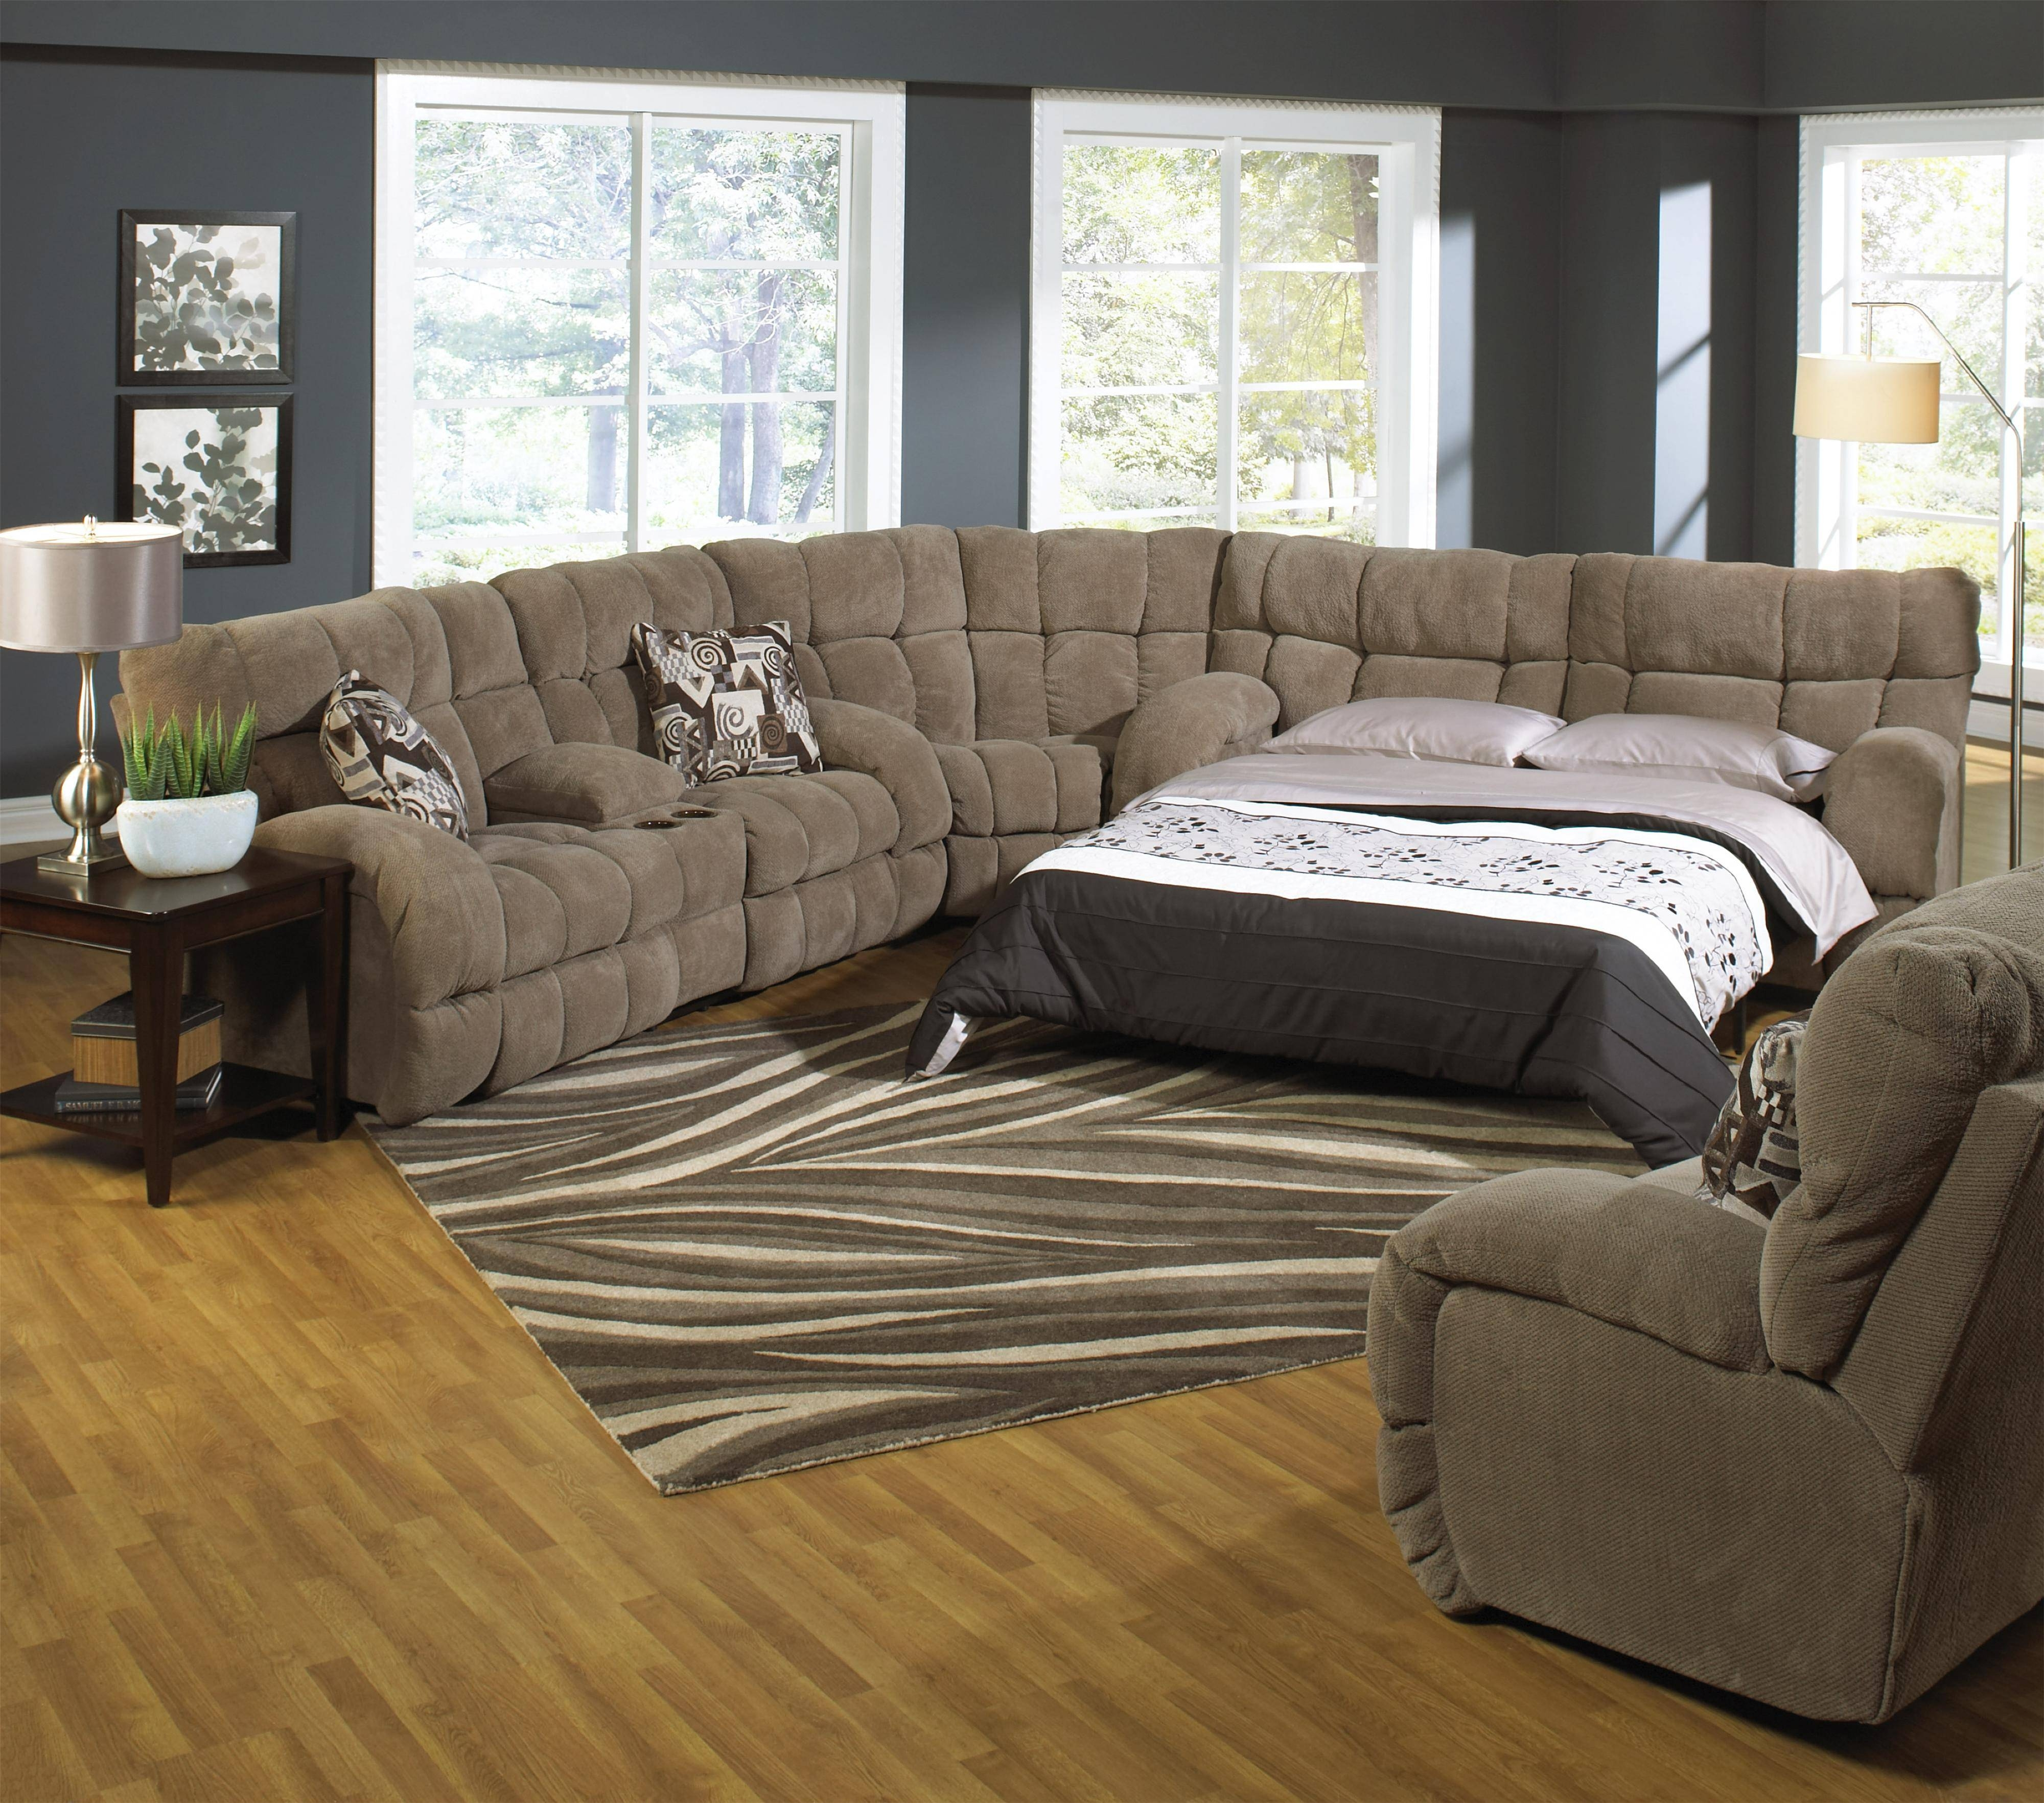 Furniture: Incredible Style Sectional Reclining Sofas For Your intended for Sectional Sofas With Sleeper and Chaise (Image 17 of 30)